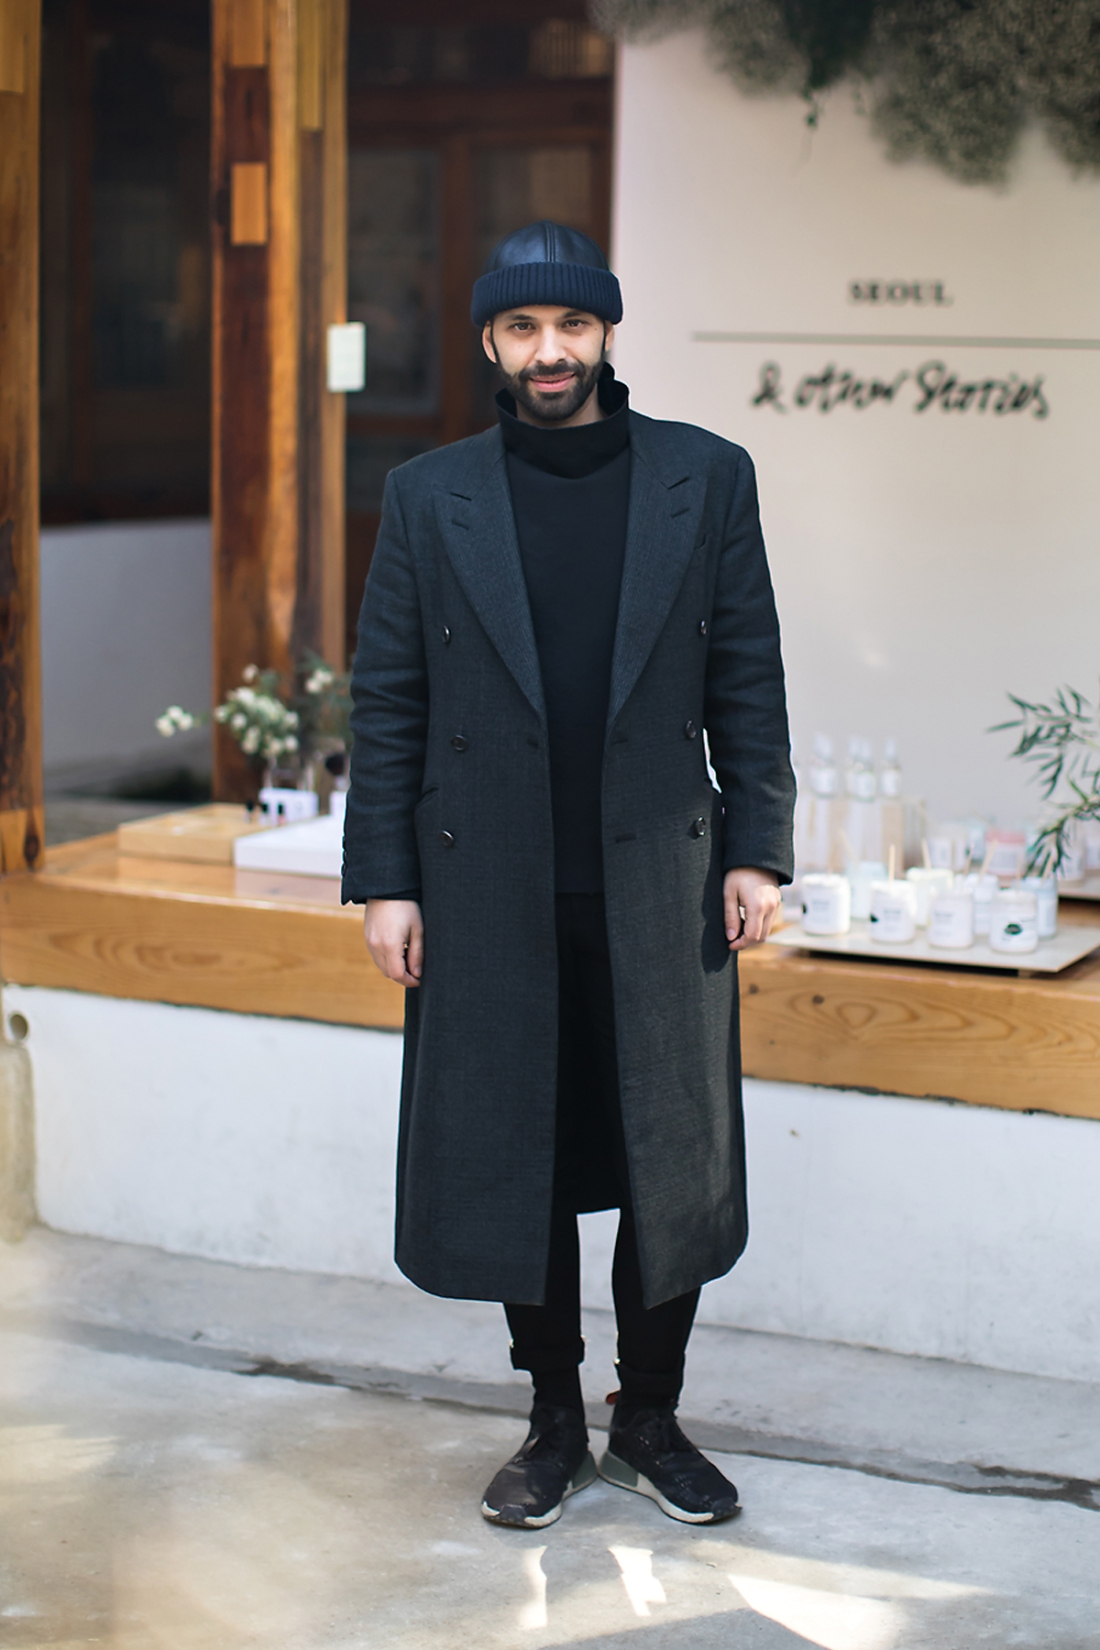 Luca, Street Fashion 2017 in SEOUL.jpg